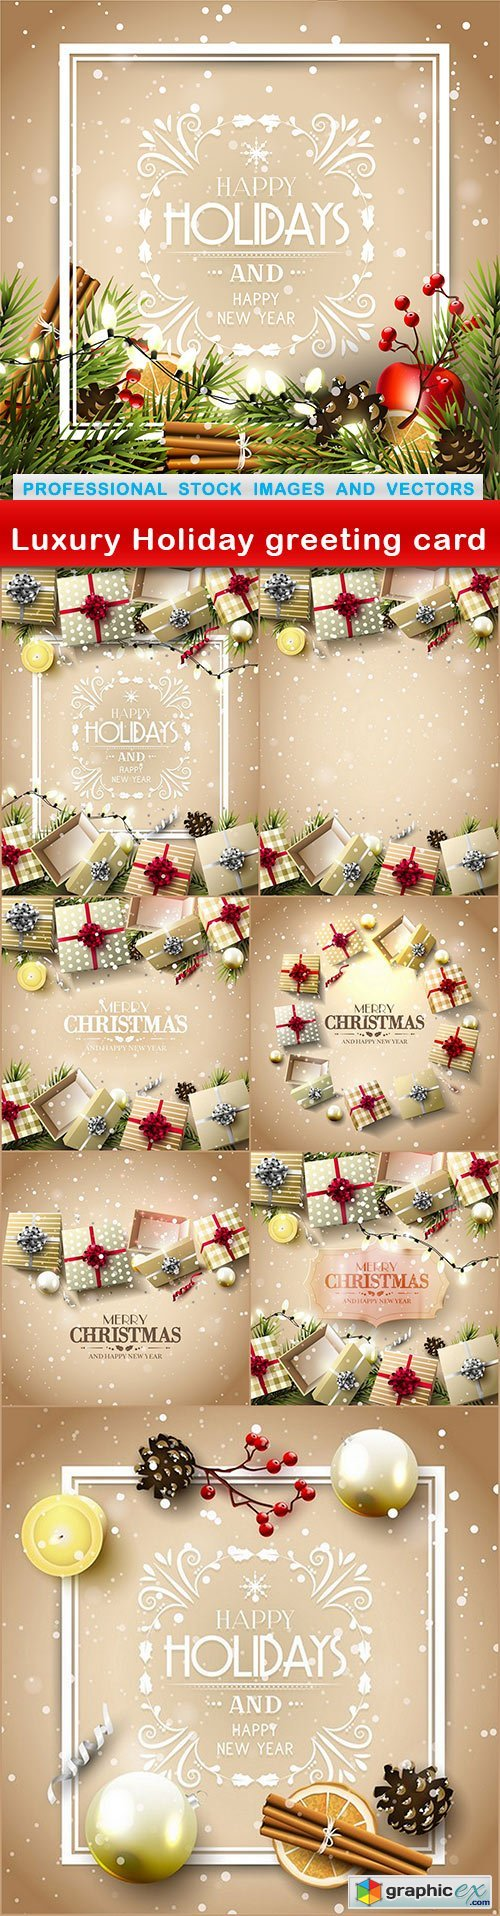 Luxury Holiday greeting card - 8 EPS